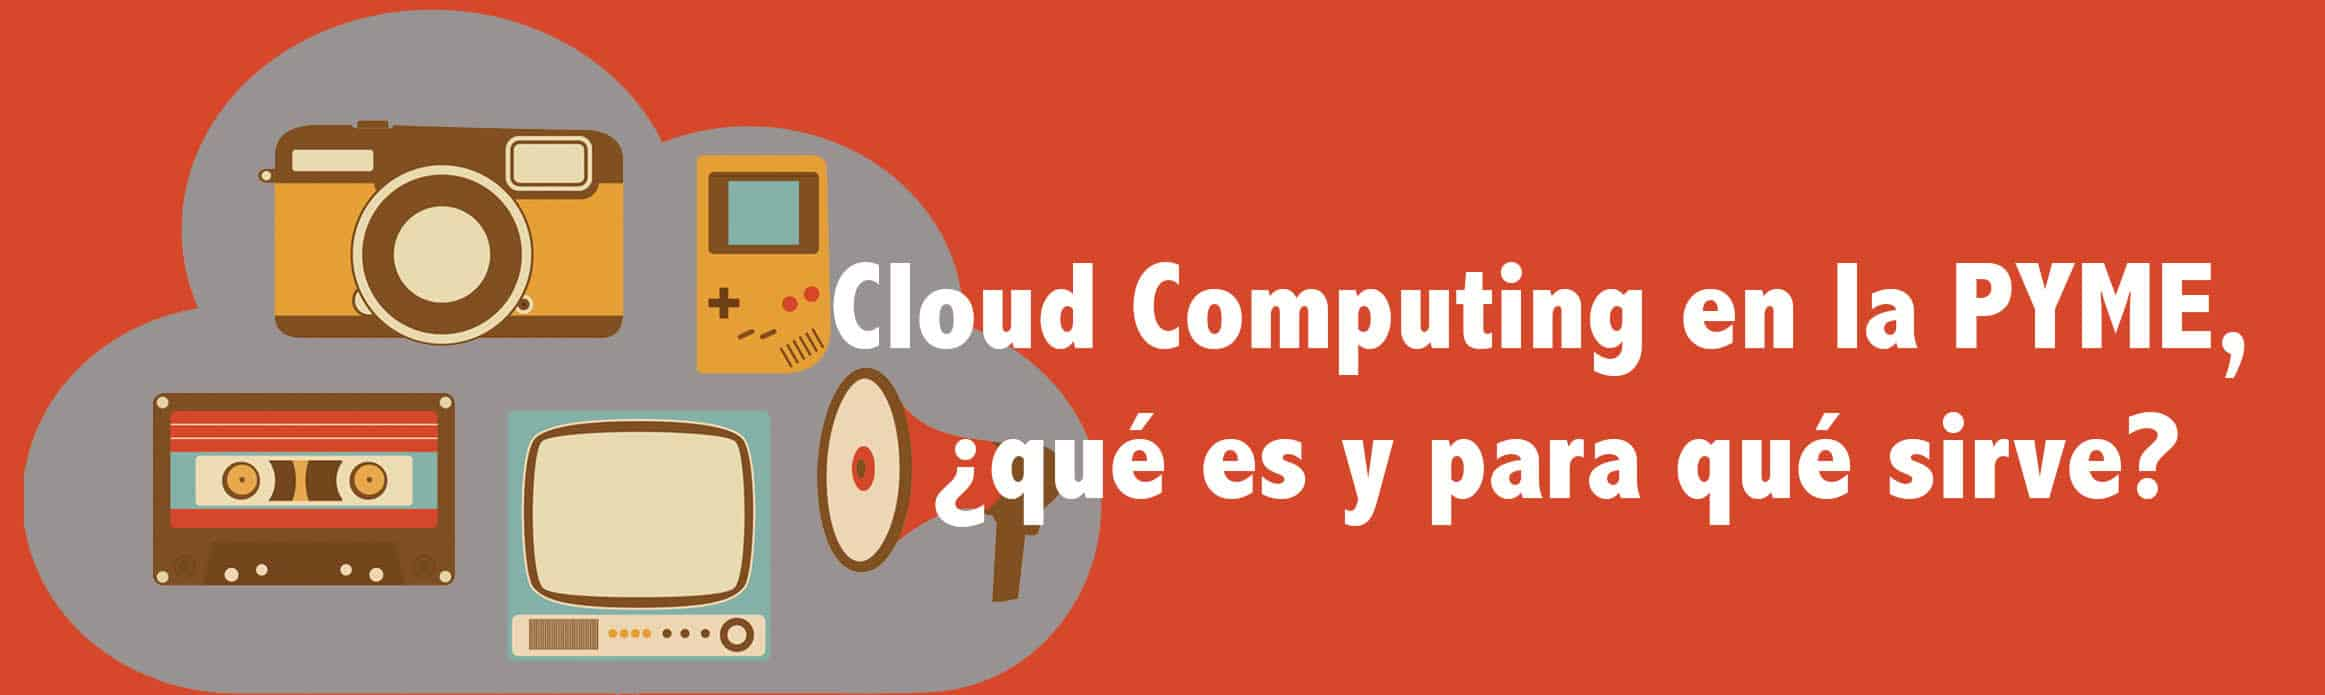 CLOUD COMPUTING PYME